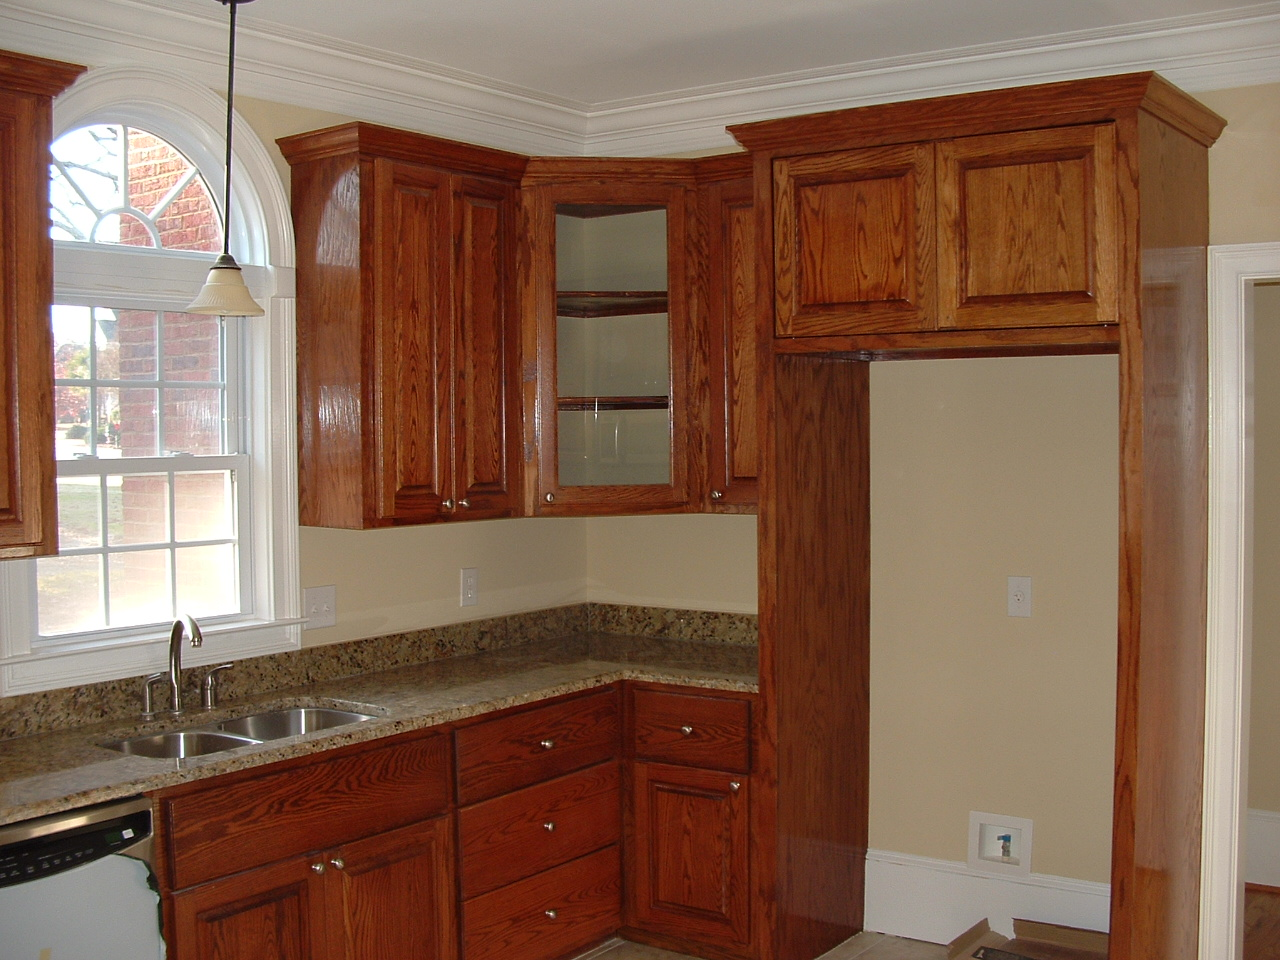 Tall kitchen pantry cabinet furniture photo - 1